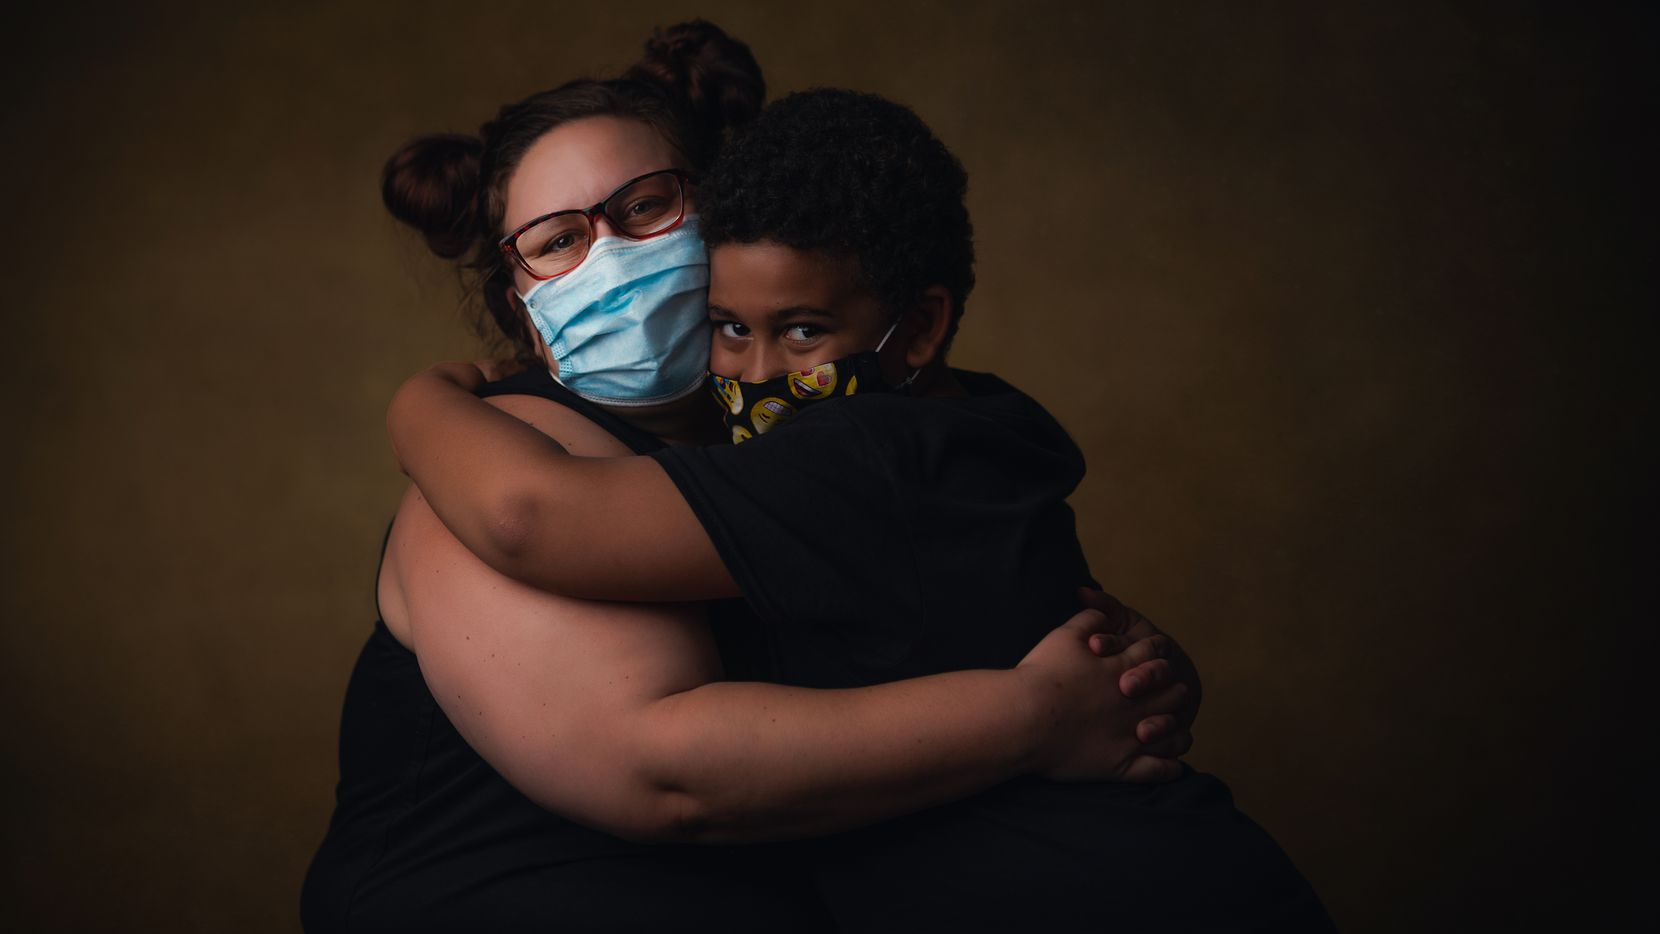 Kristen Brewer and Kalique Horton  Residents, Dallas Life, Portraits of Staff and Residents after Covid19 re-entry, May 2020